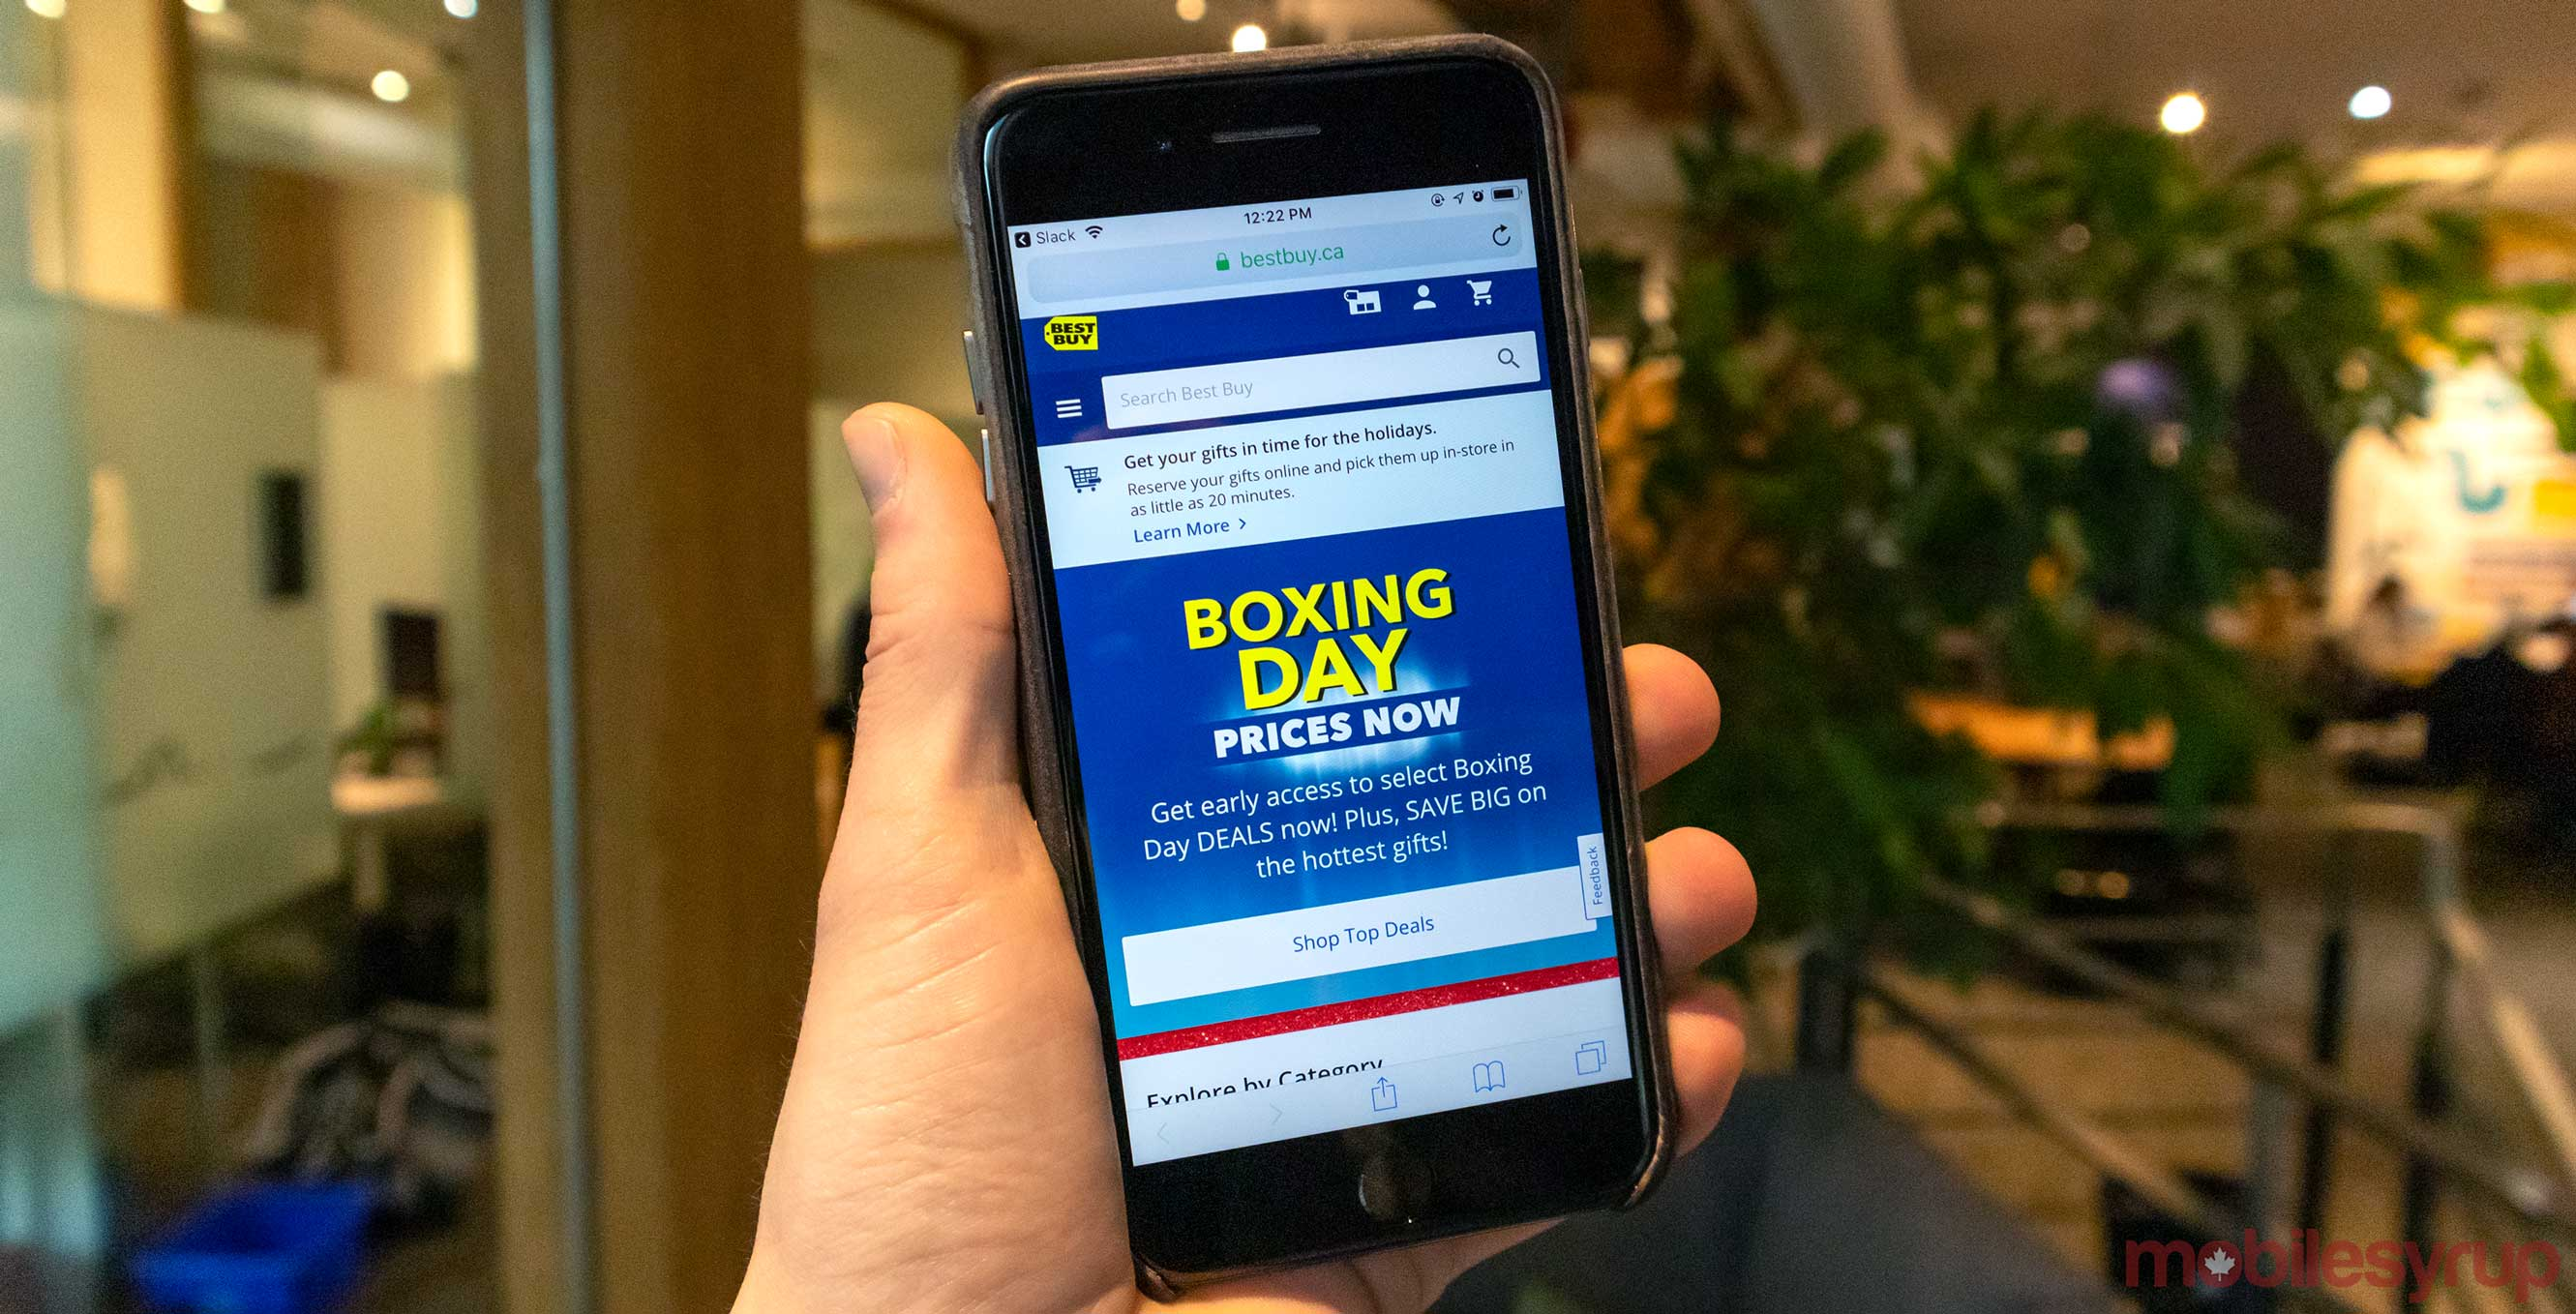 Best Buy Canada Announces Its Boxing Day Prices Now With Big